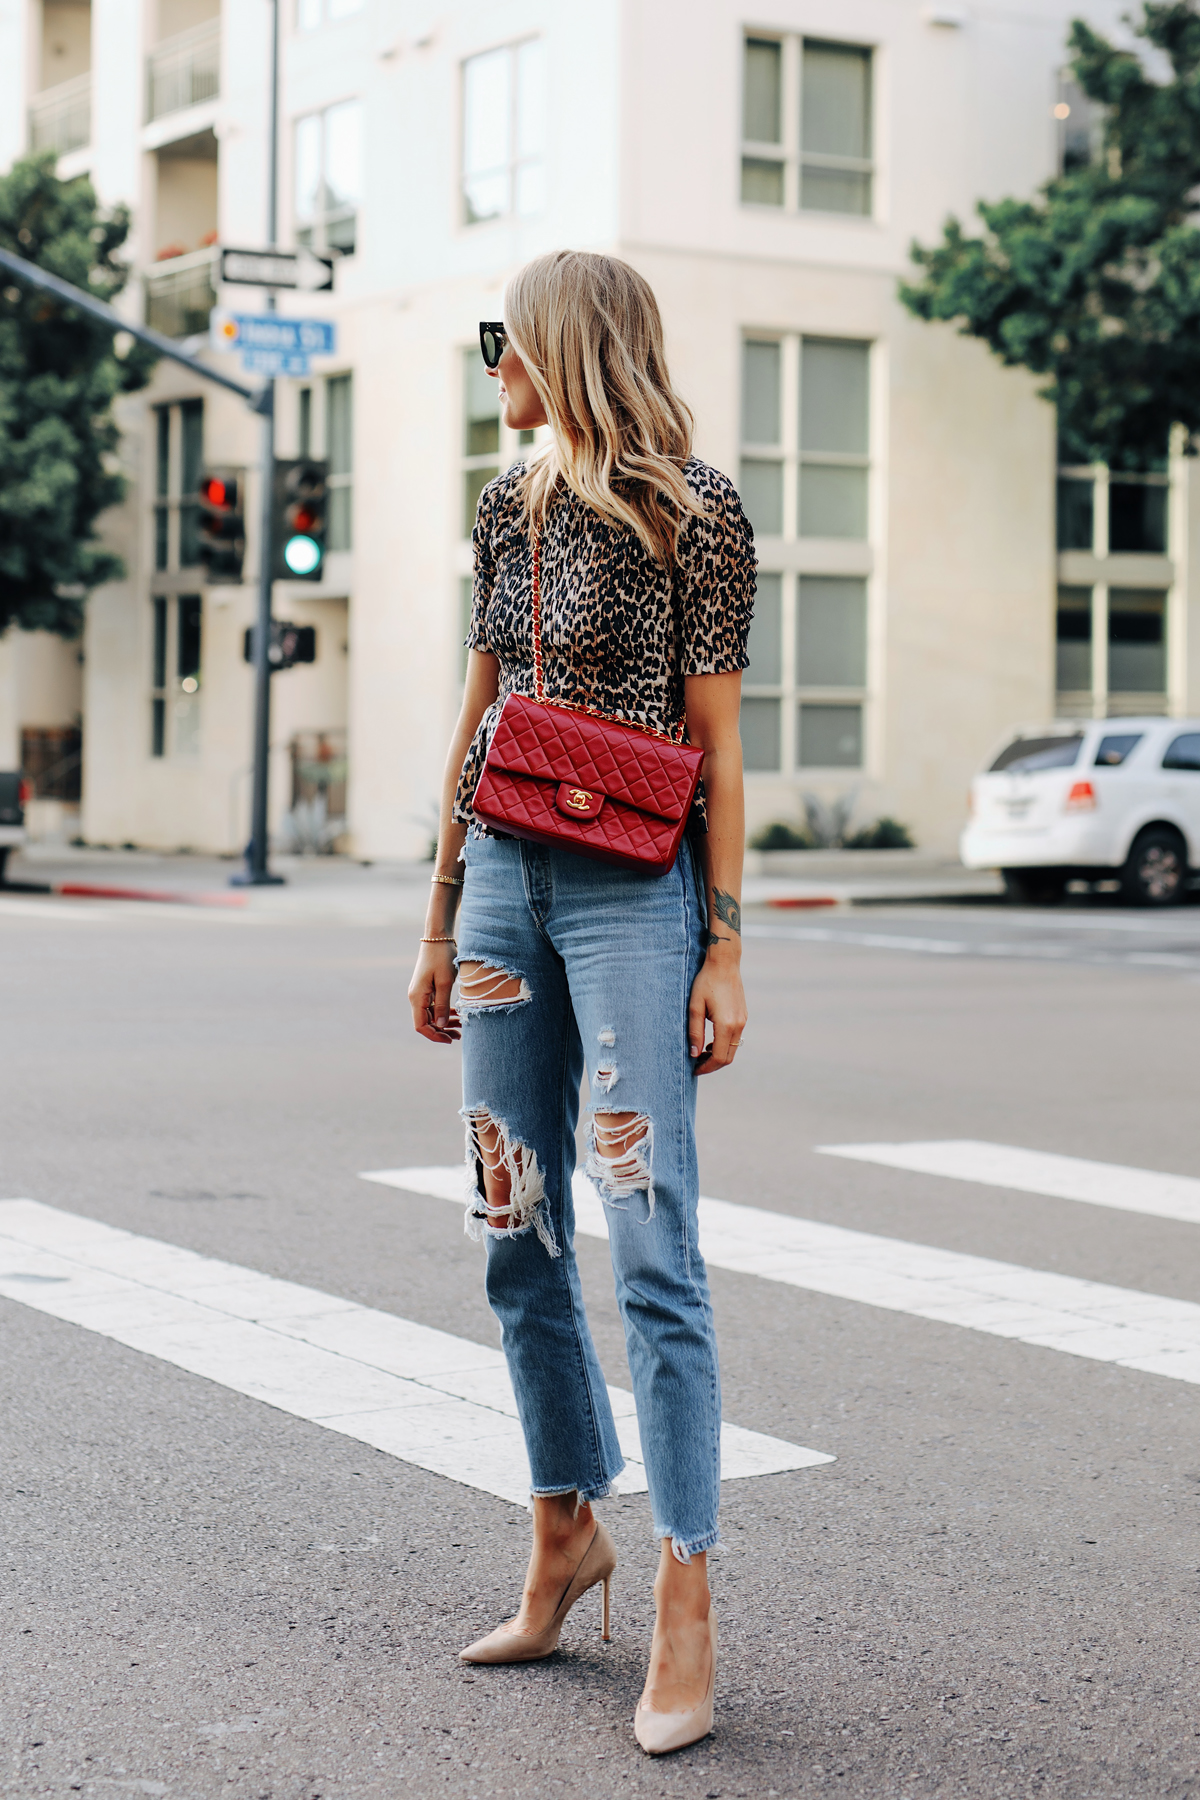 Fashion Jackson Wearing Ganni Leopard Peplum Top Levis Ripped Jeans Jimmy Choo BB Nude Pumps Chanel Classic Flap Red Handbag 1